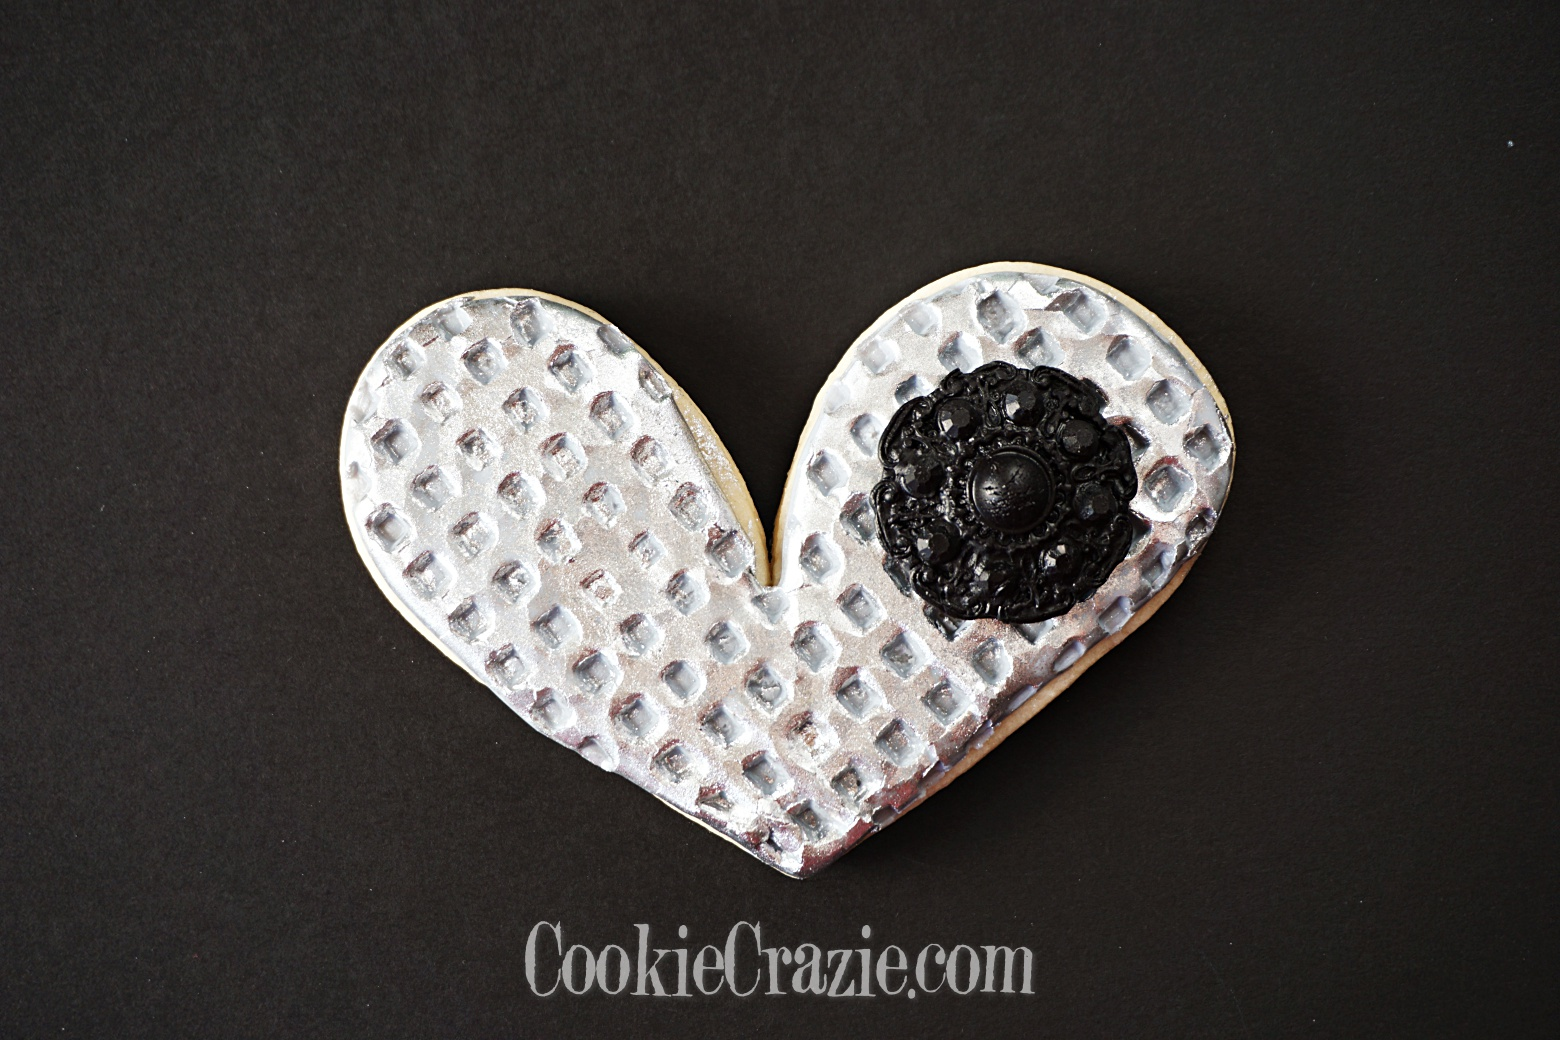 Silver Heart Decorated Sugar Cookie YouTube video  HERE